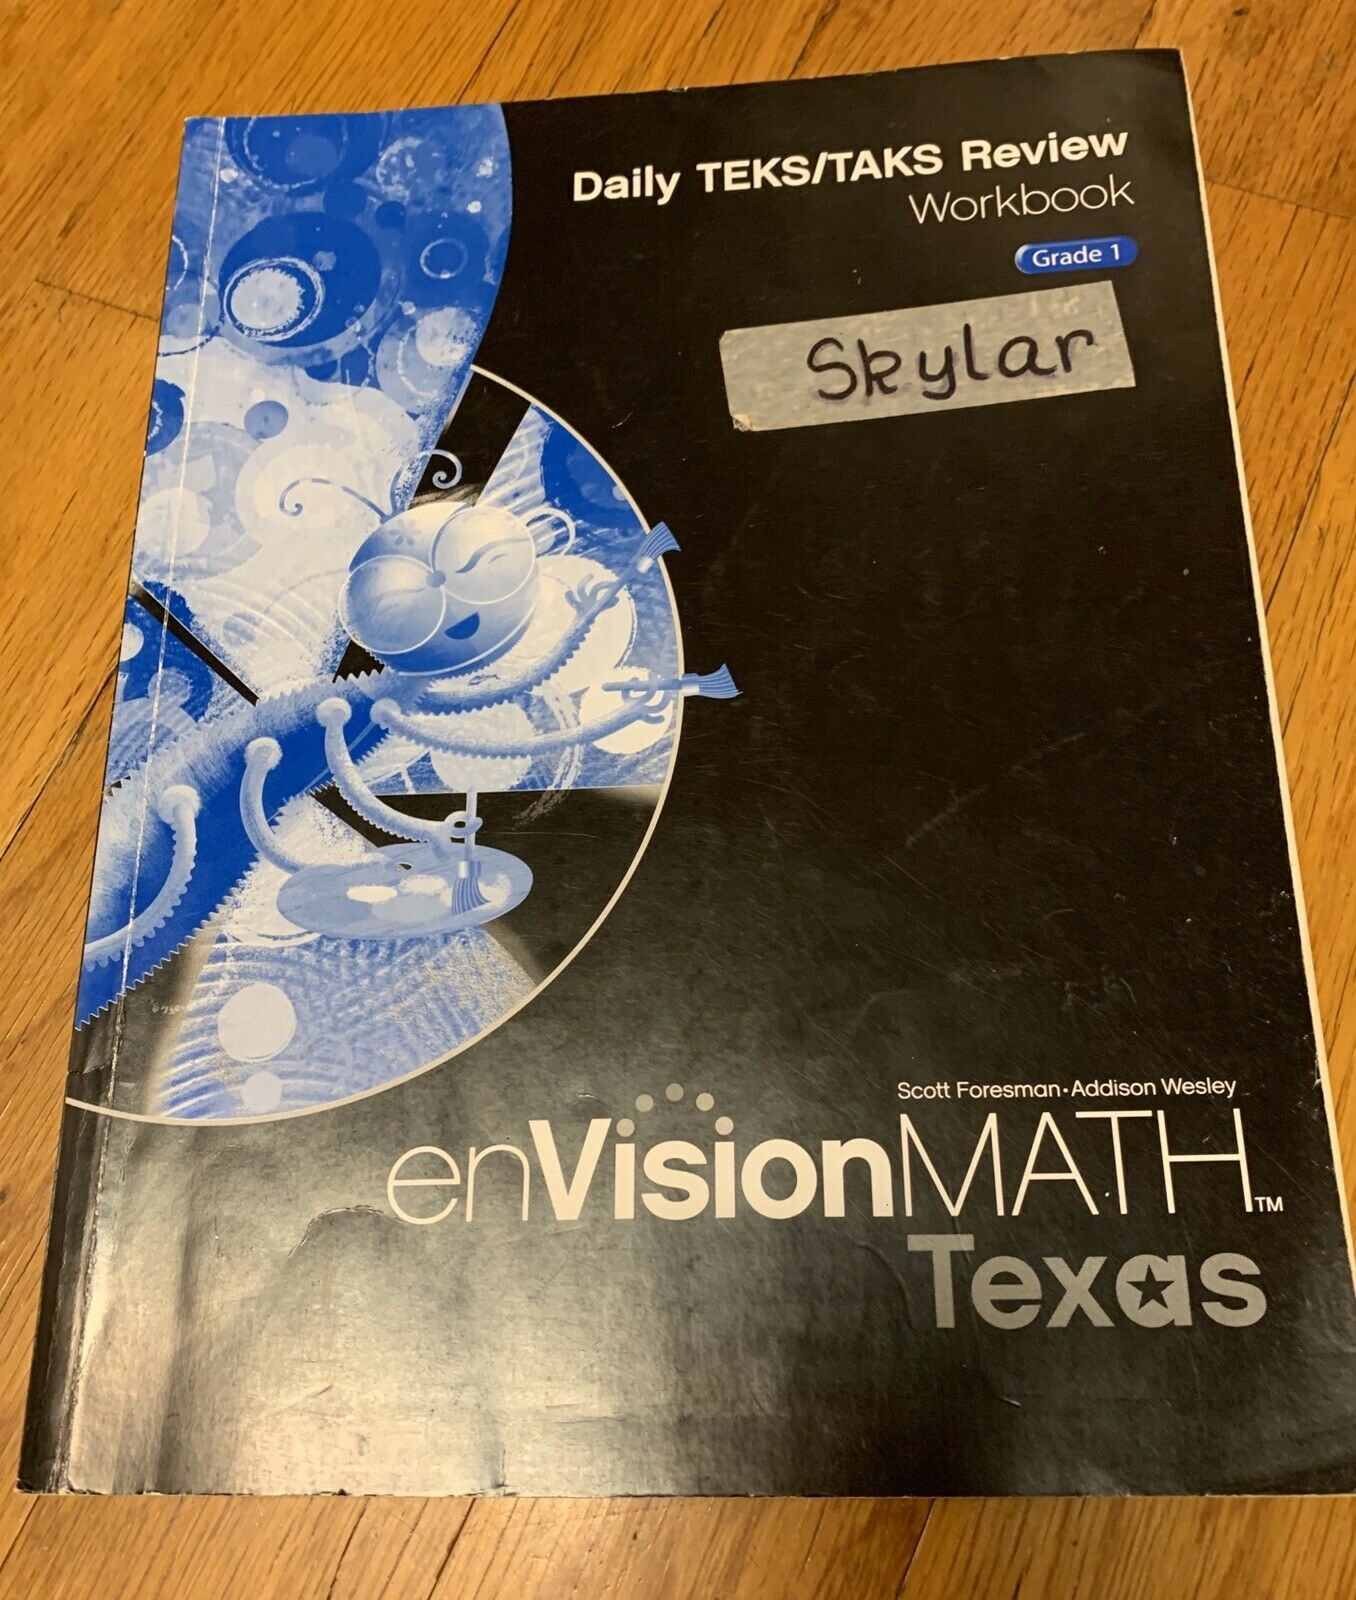 hight resolution of 1st Grade Math Workbook - Texas EnVision MATH - Daily TEKS/TAKS Review  Workbook for sale online